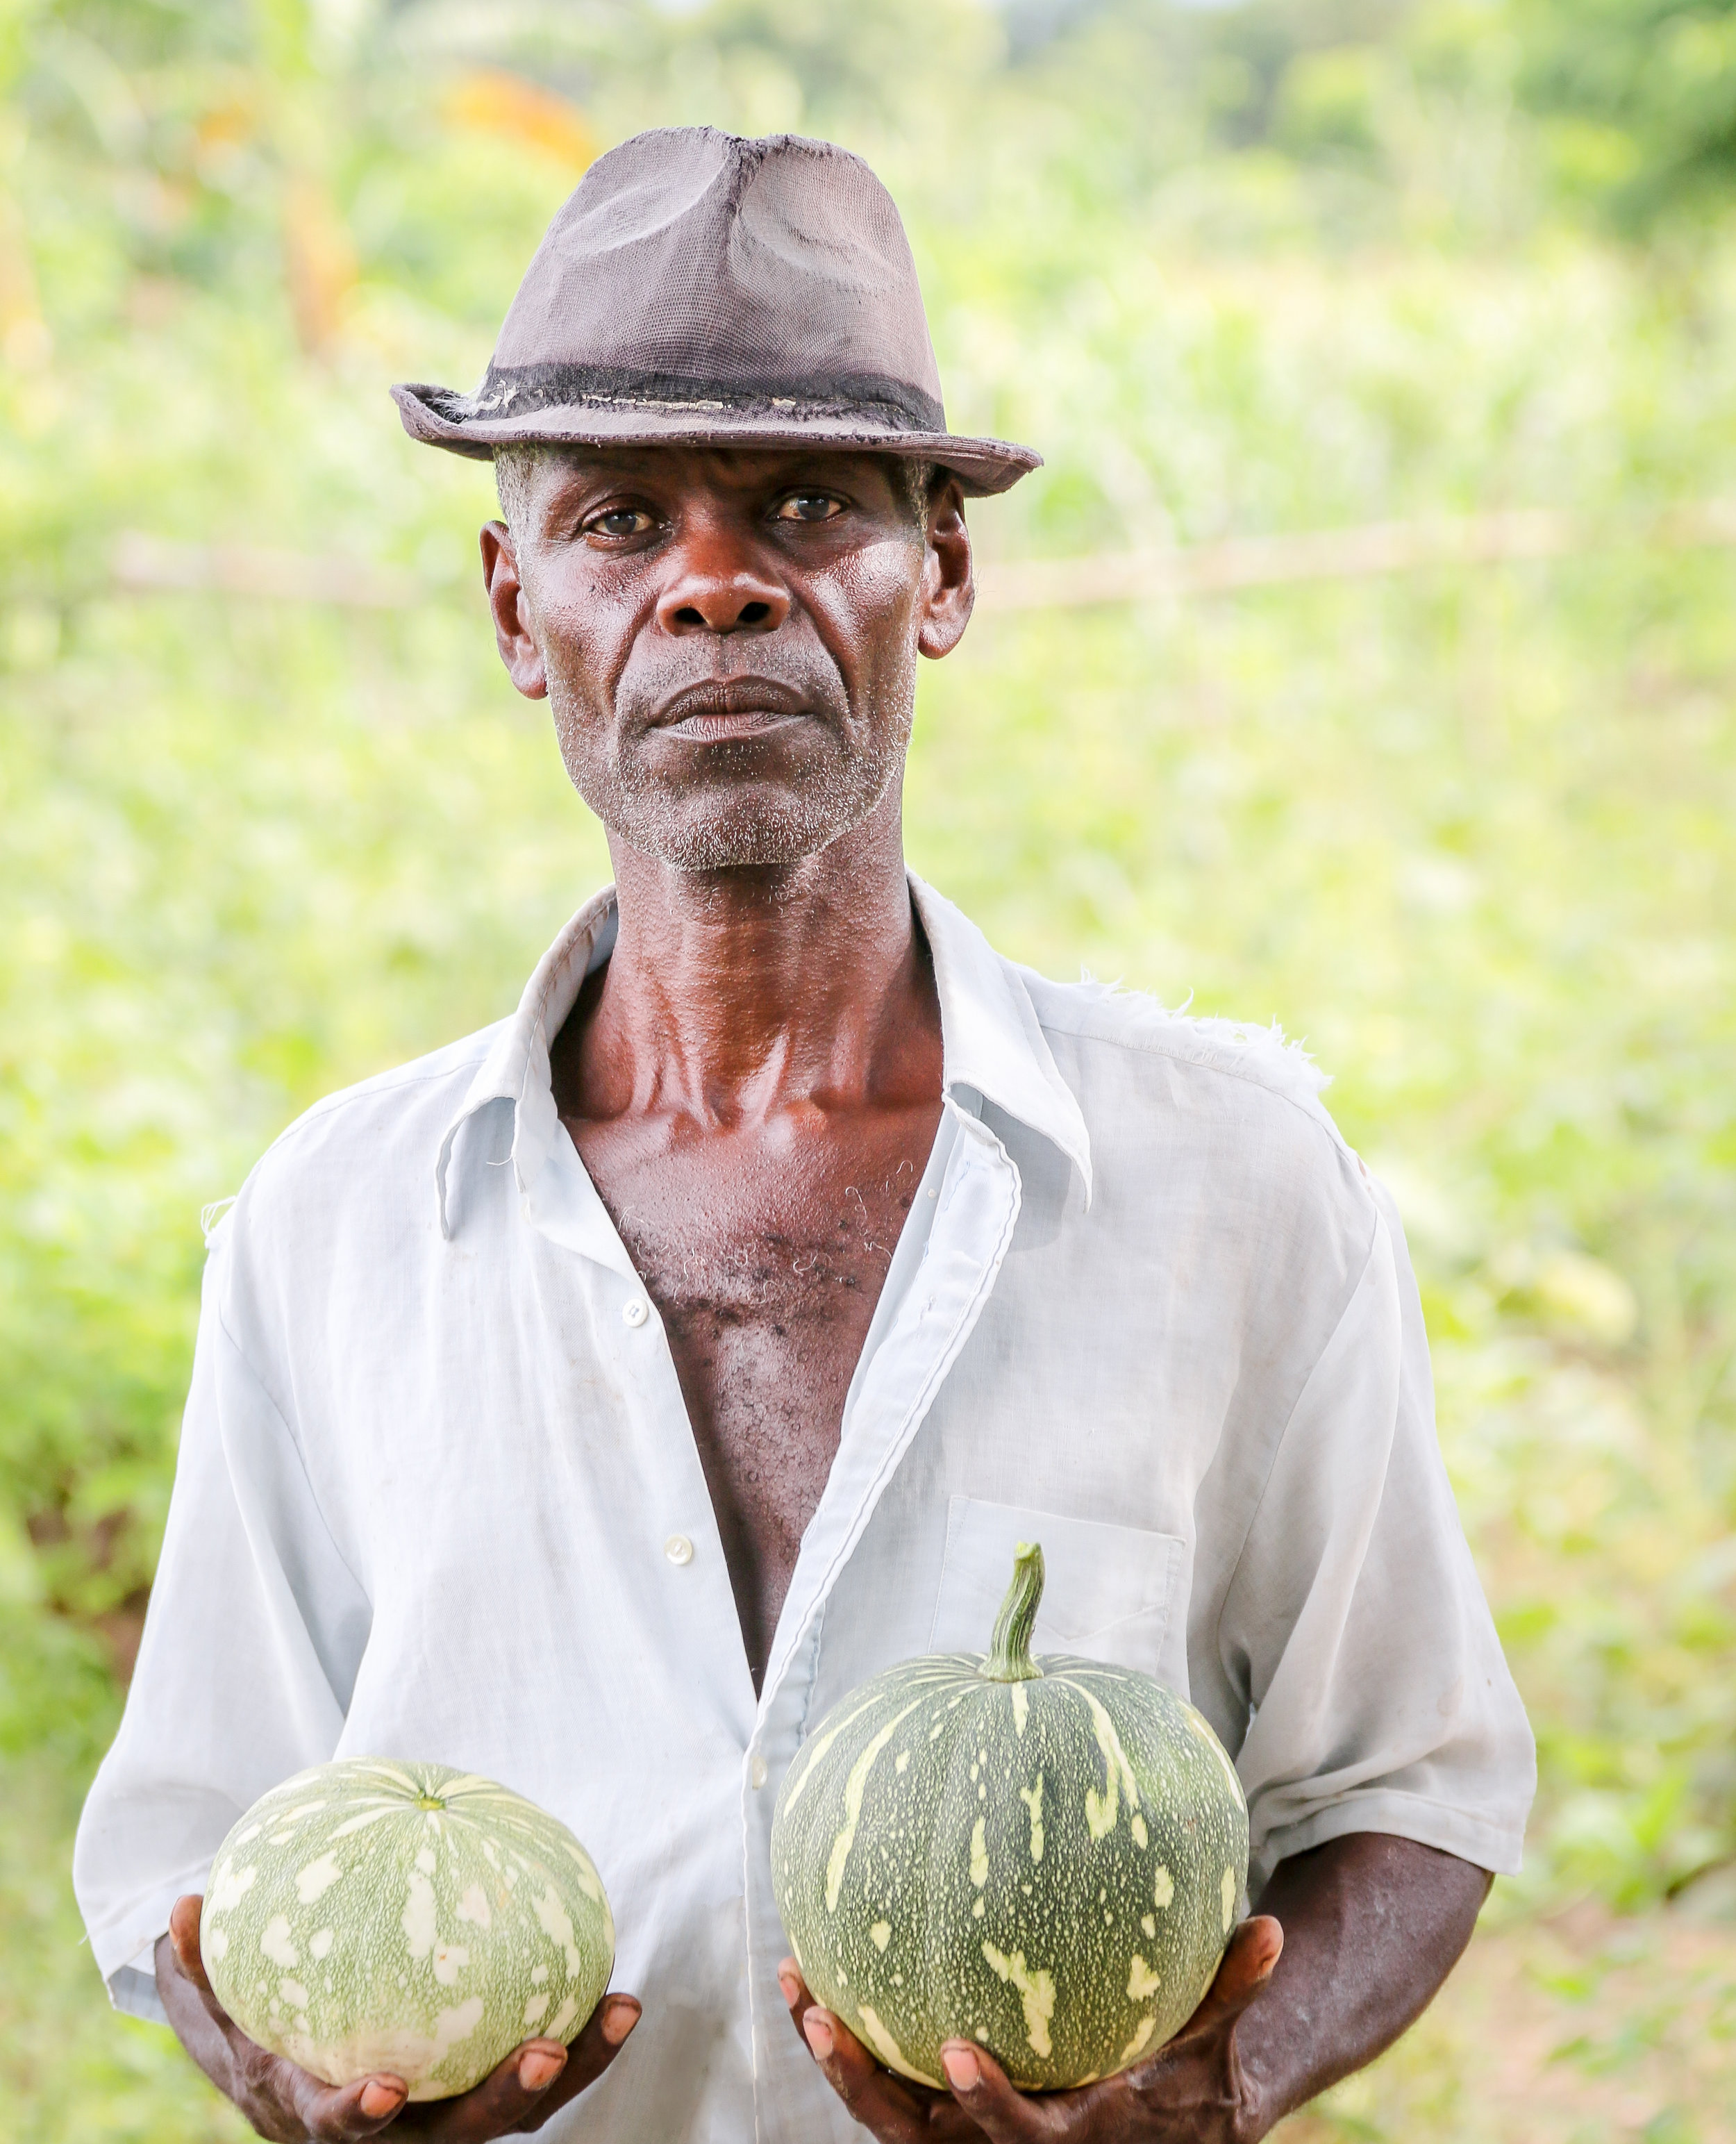 Dieujuste Saint-Surain stands in his field in Senk-Pòt, Haiti, holding up two freshly harvested joumou